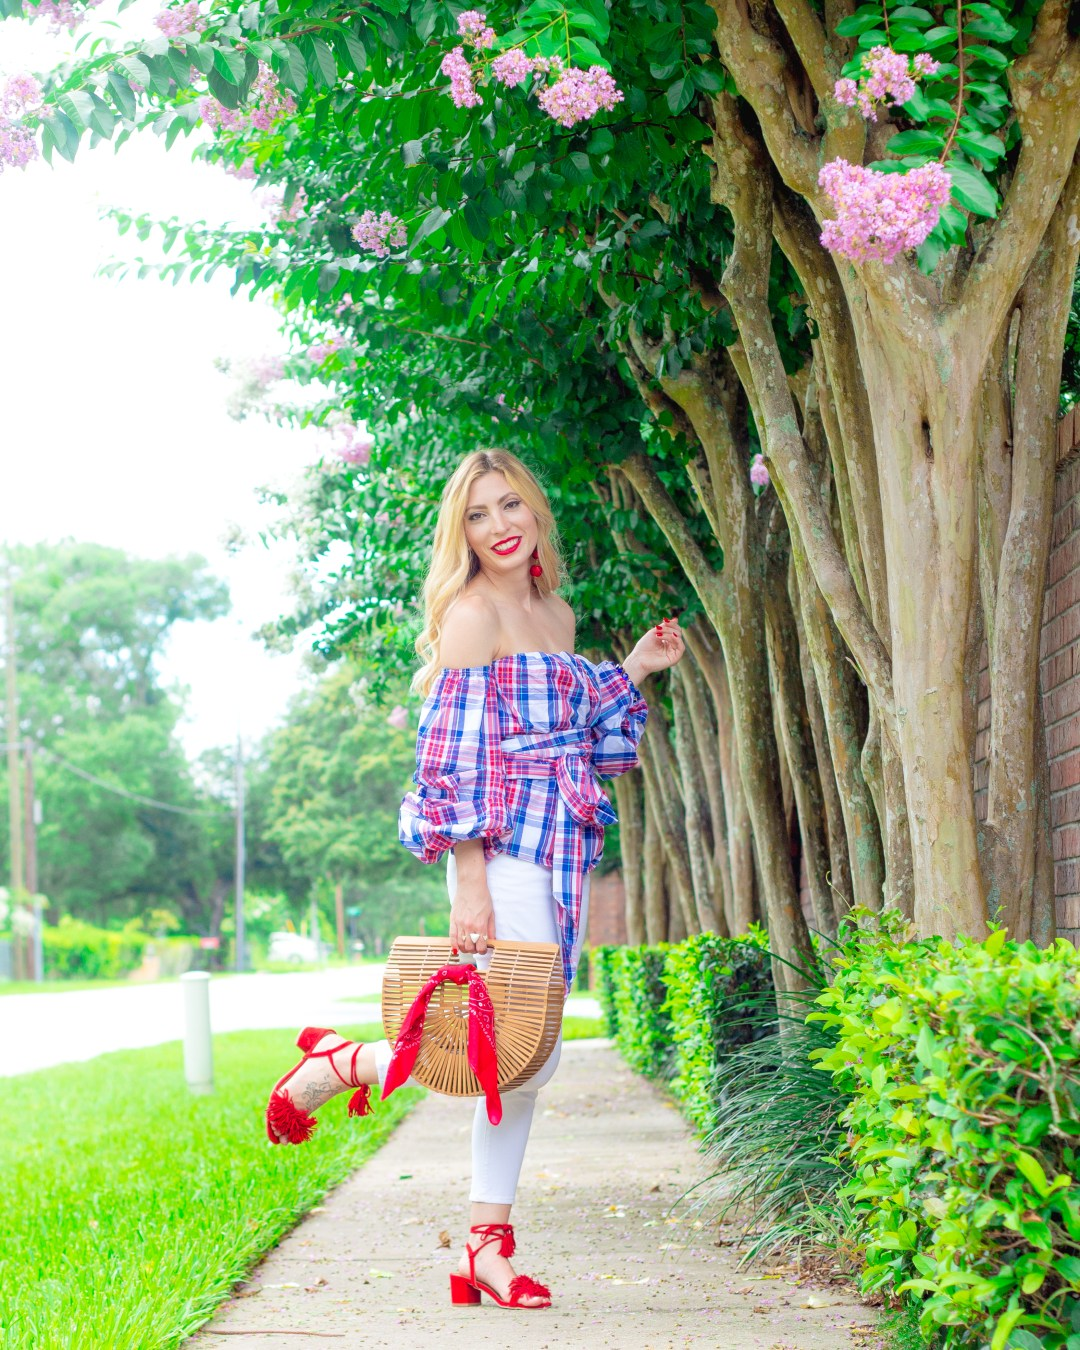 4TH OF JULY OOTD RED, WHITE, AND BLUE